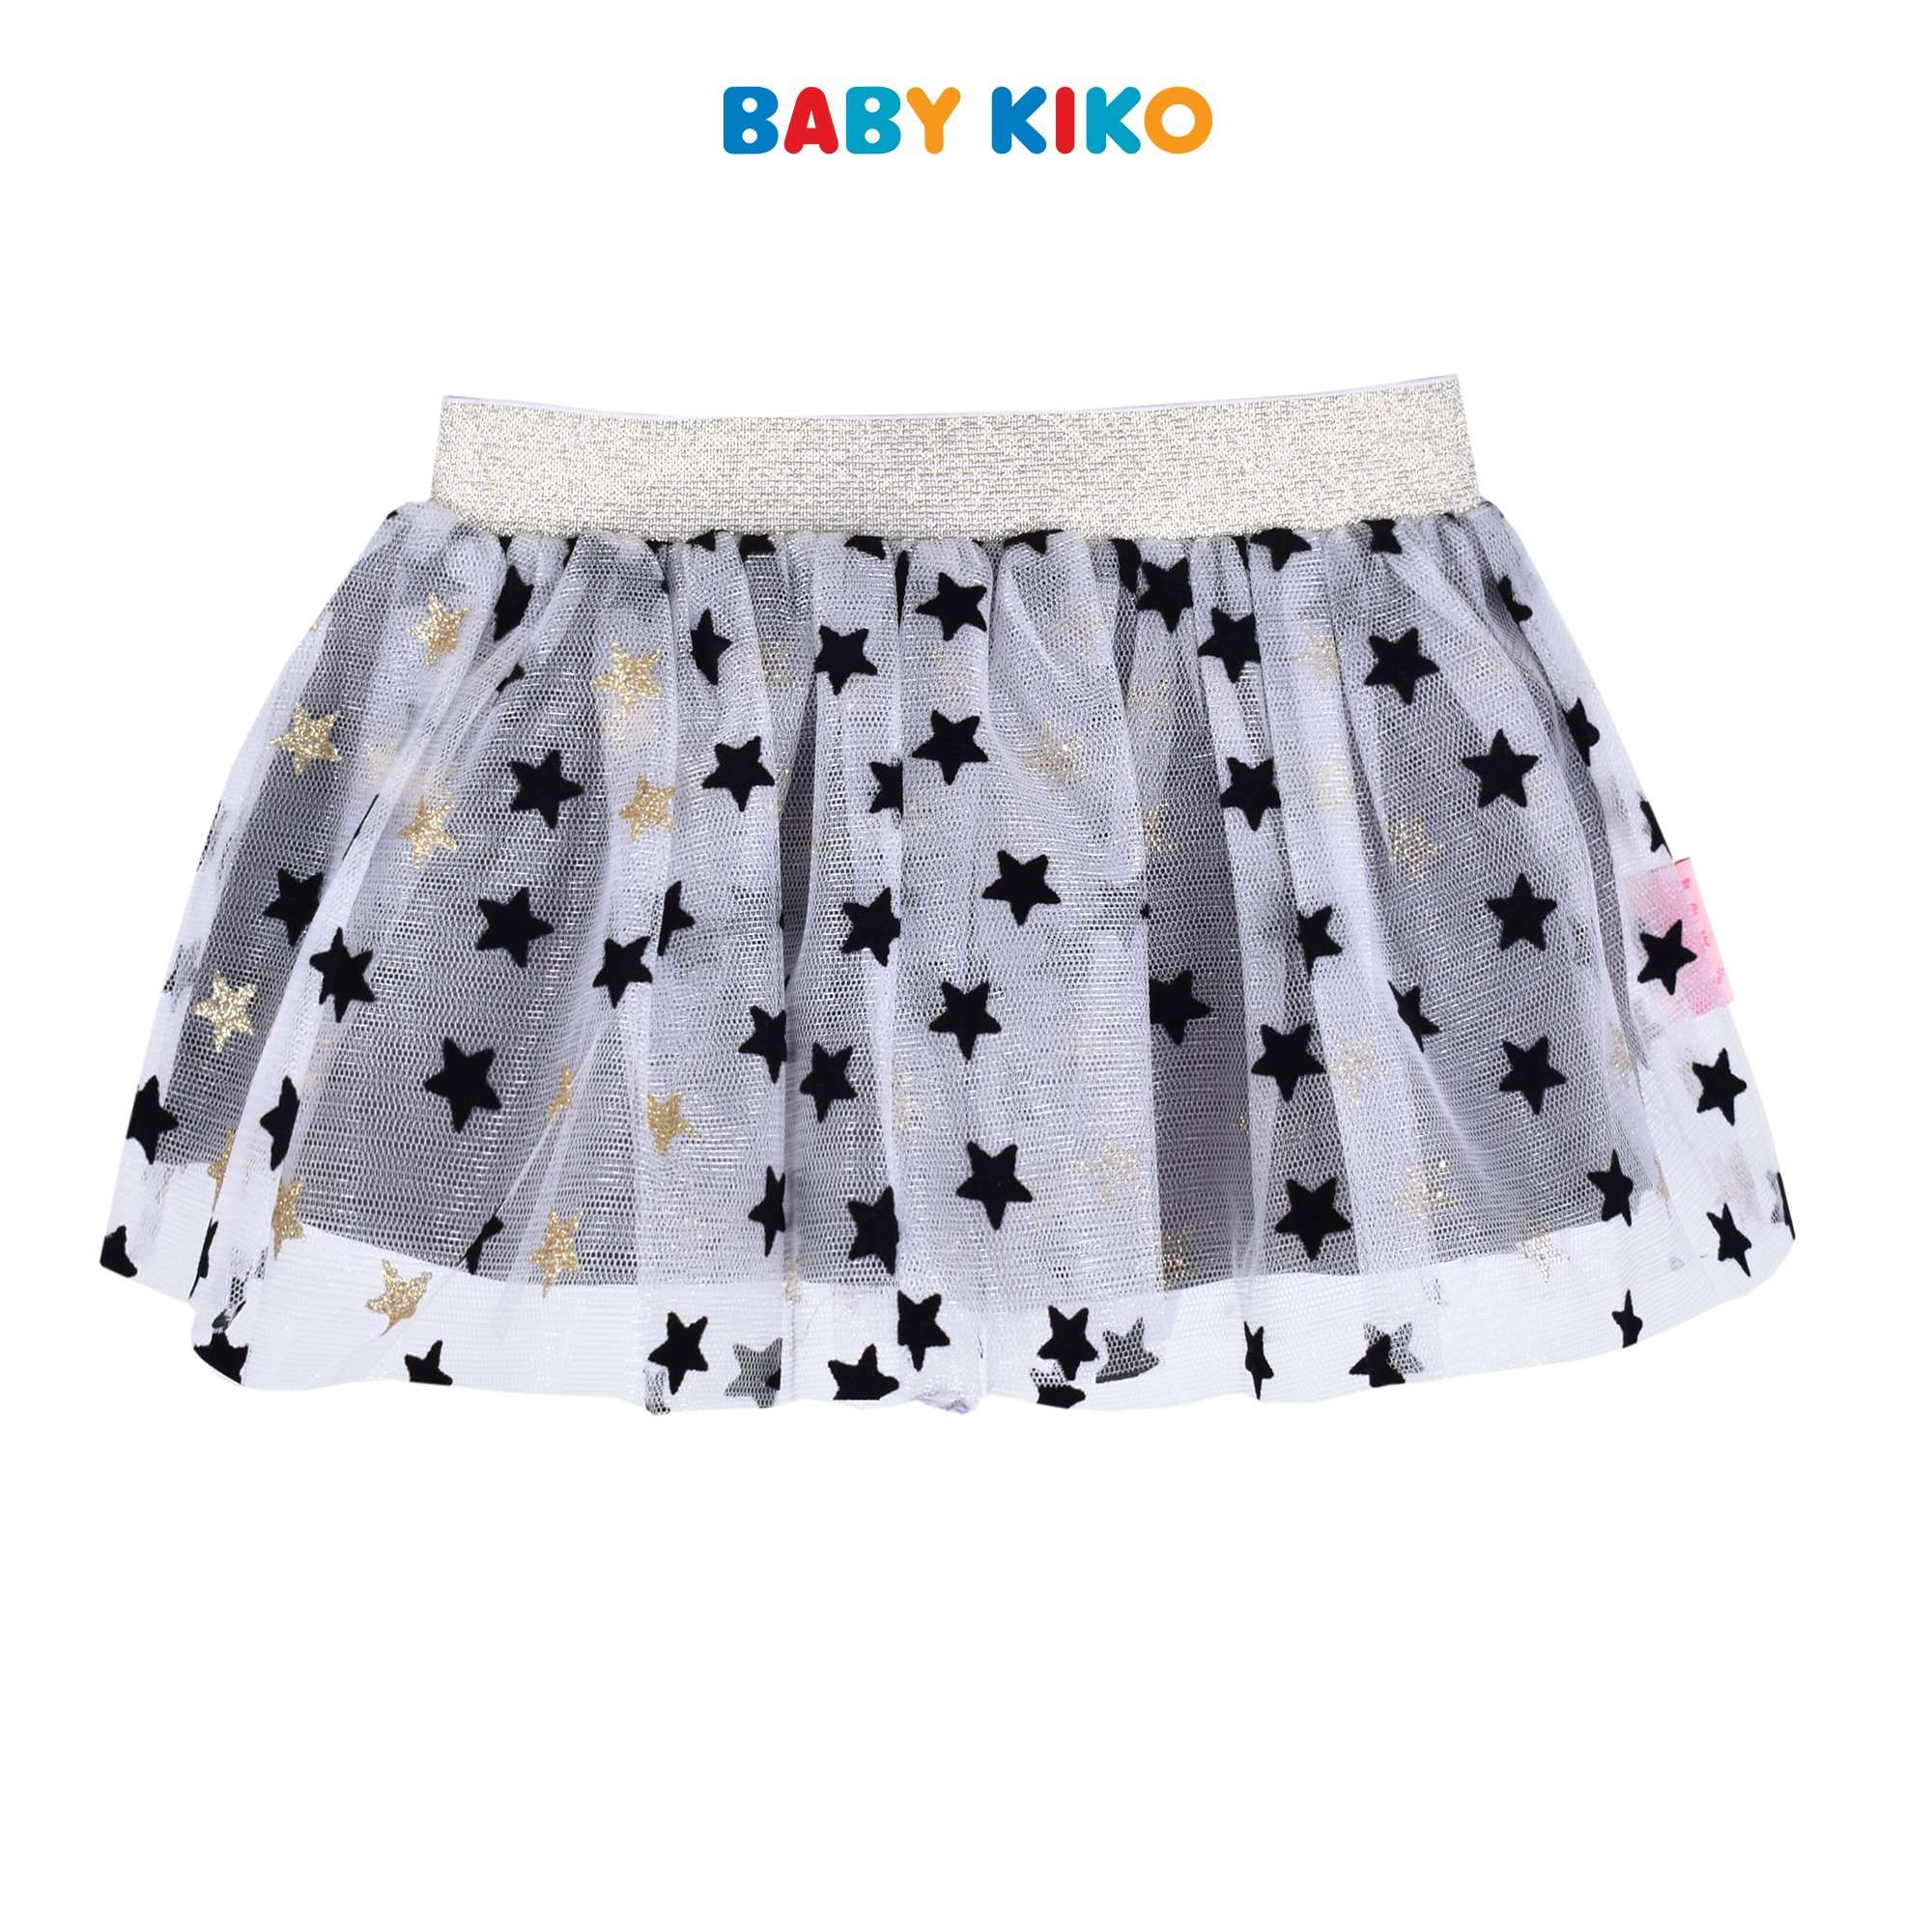 Baby KIKO Toddler Girl Tulle Skirt - Black 335095-261 : Buy Baby KIKO online at CMG.MY